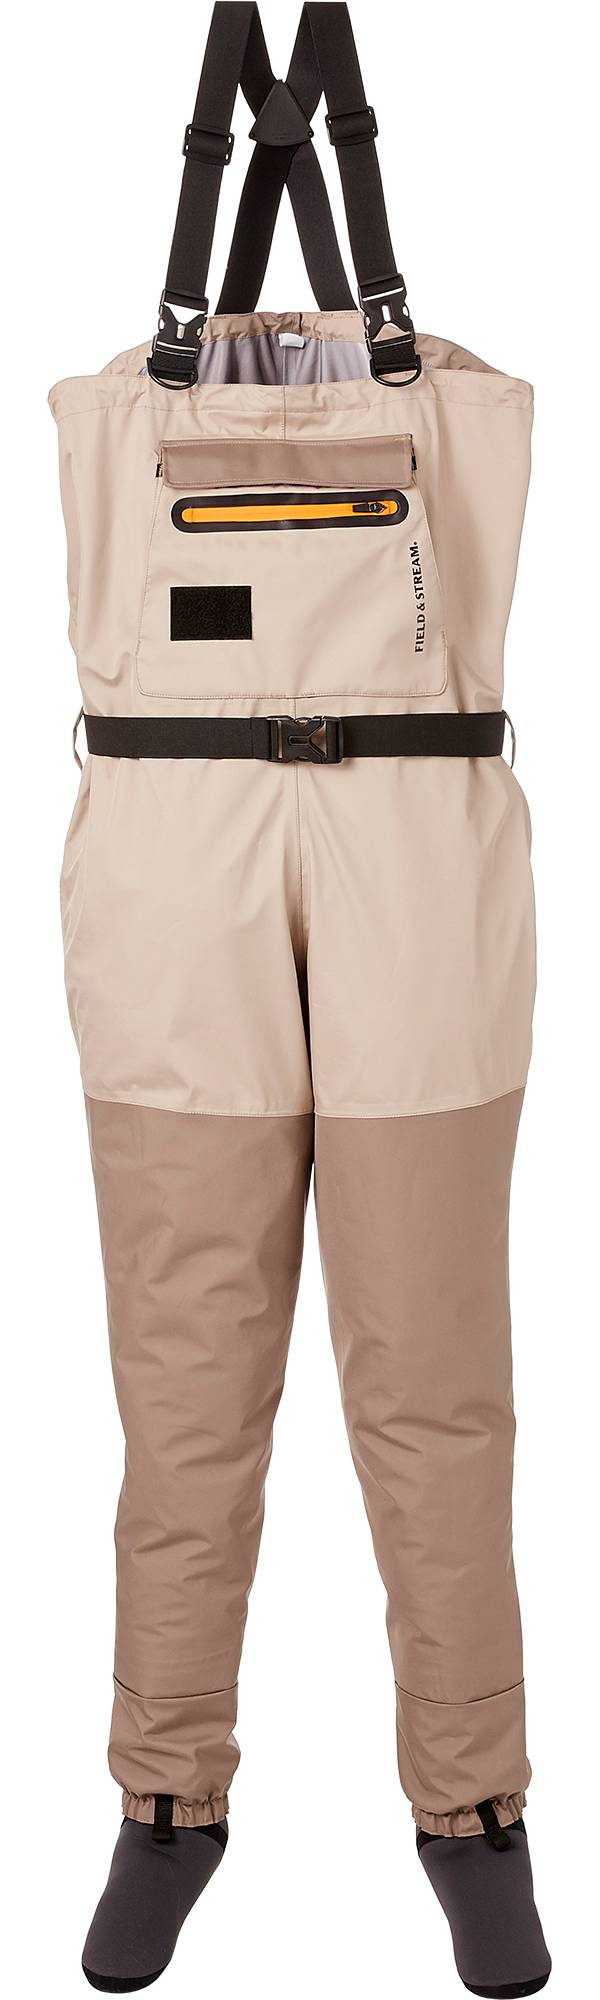 Field & Stream Angler Breathable Chest Waders product image